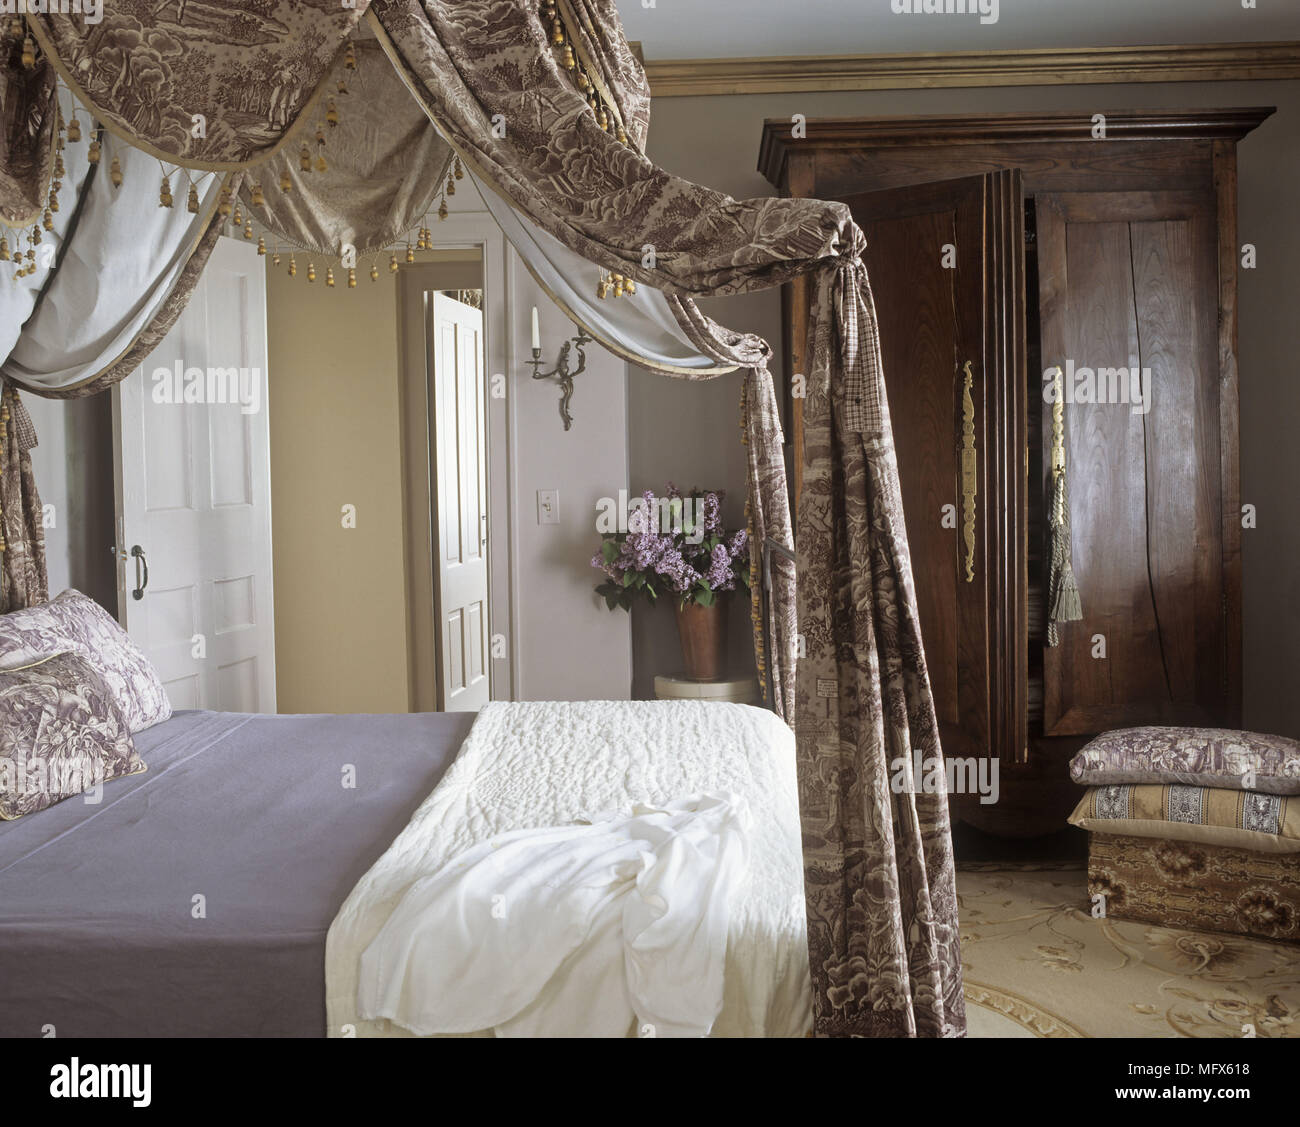 A Traditional Bedroom Four Poster Bed With Drapes Wardrobe Stock Photo Alamy